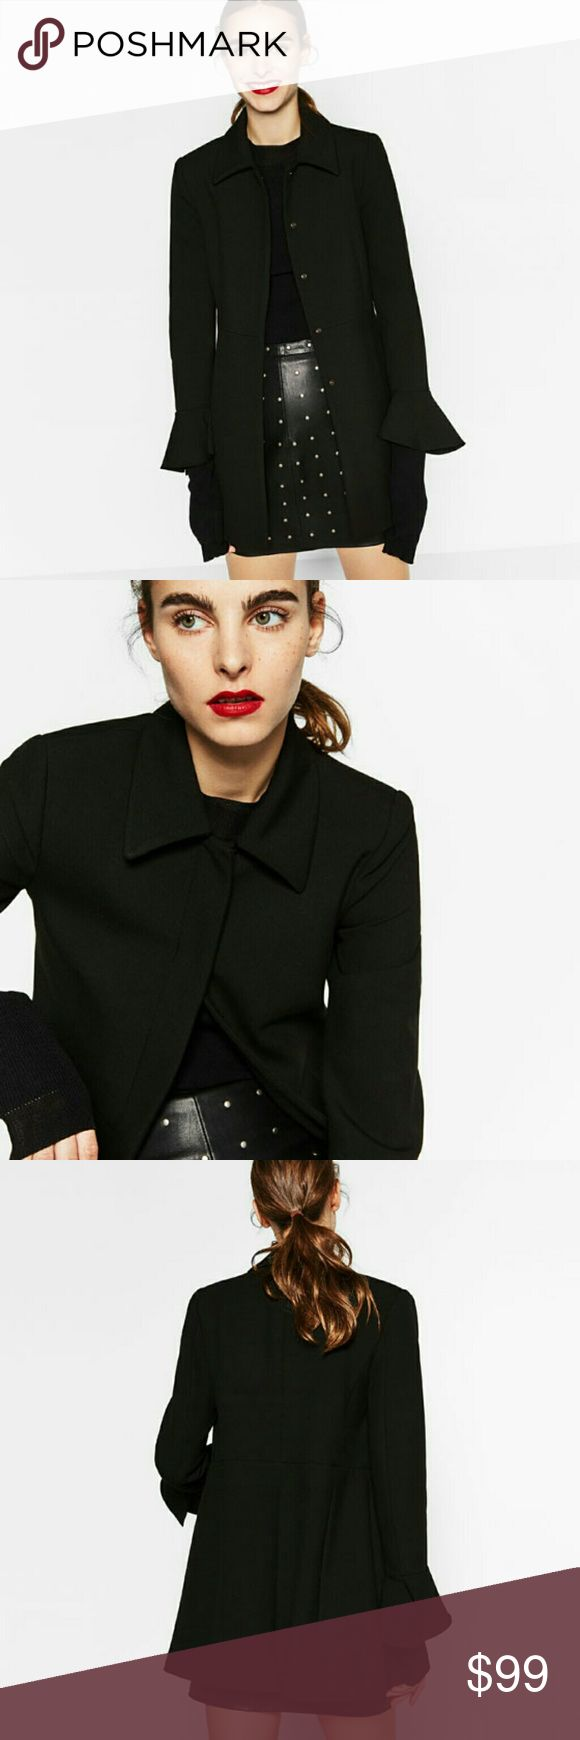 Zara Frilled Cuff Frock coat black size small New and unworn Zara Frilled Frock coat in black. Button snap closure. Size small, well made, lined & authentic! Reasonable offers considered by offer tab. From Zara AW 16 Collection. Item # 8303 Zara Jackets & Coats